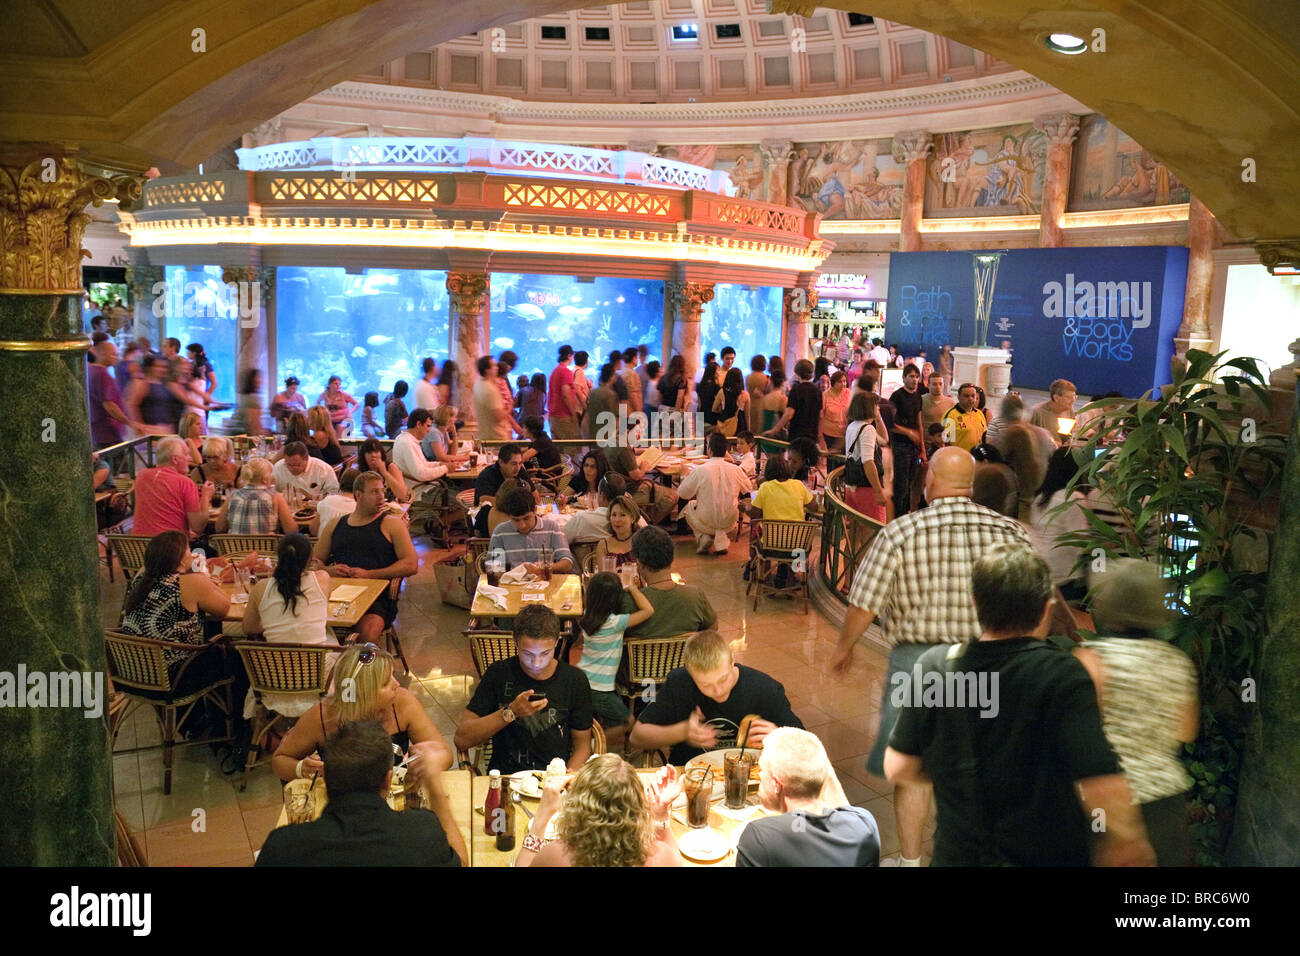 A View Of The Cheesecake Factory Restaurant The Forum